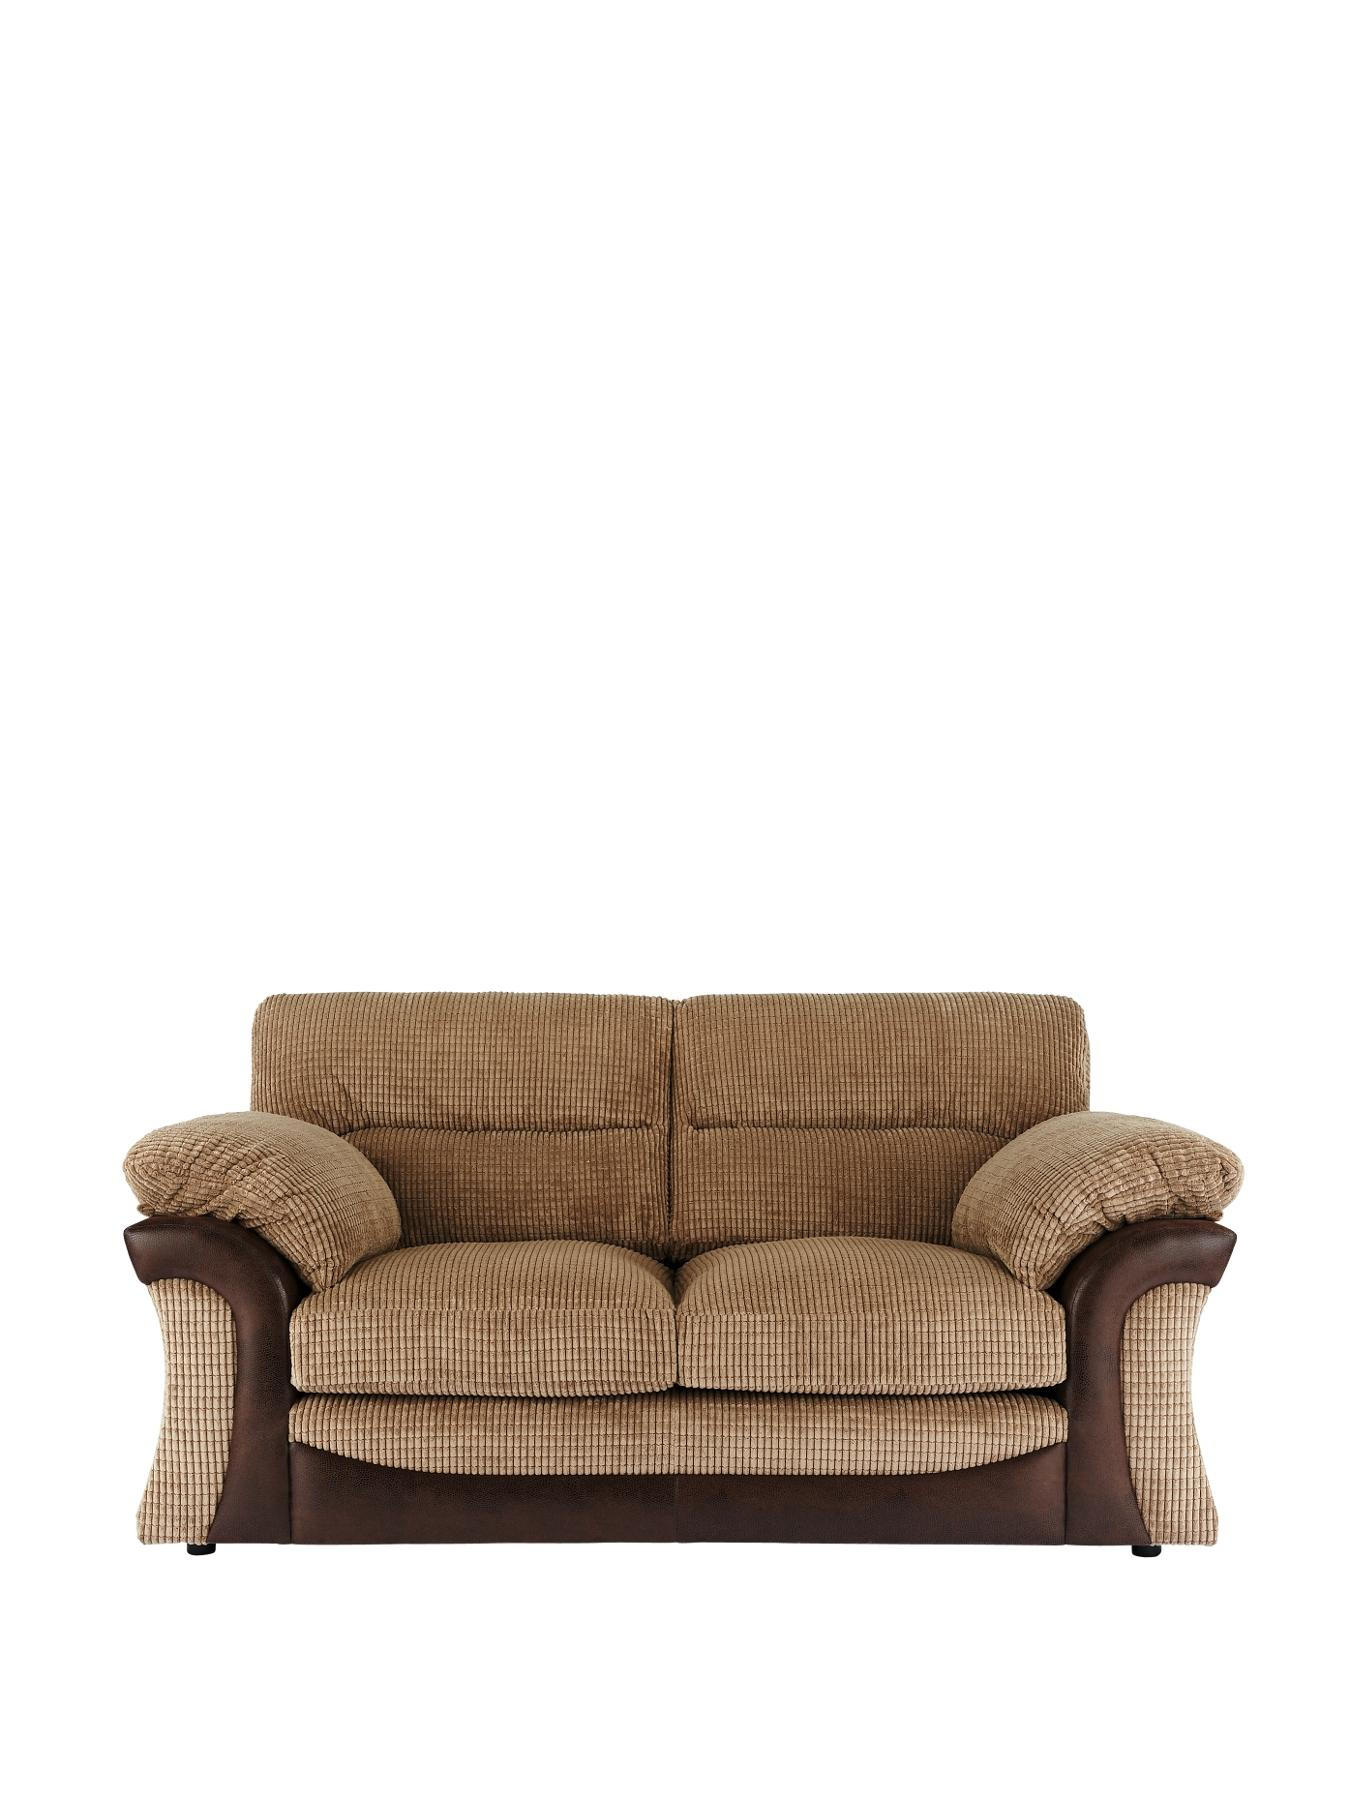 Rapide 2-Seater Sofa - Chocolate, Chocolate,Charcoal at Very, from Littlewoods